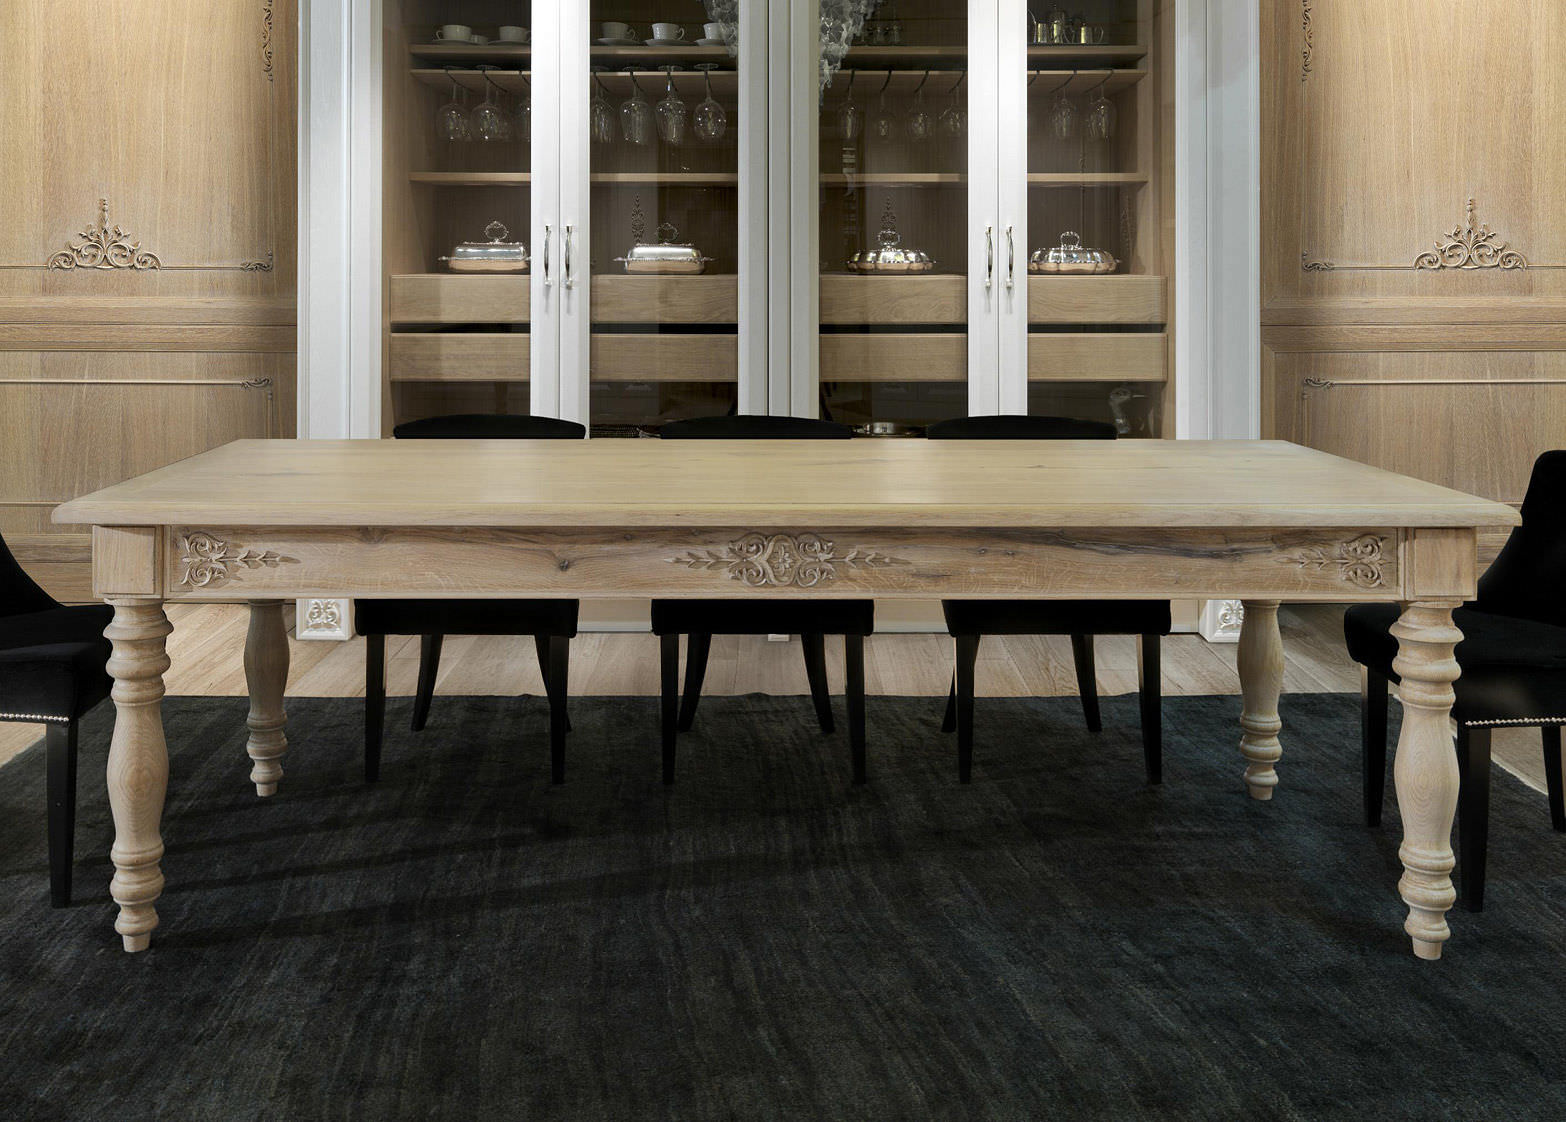 Traditional Wood Dining Tables traditional dining table / wooden / rectangular - castagna cucine